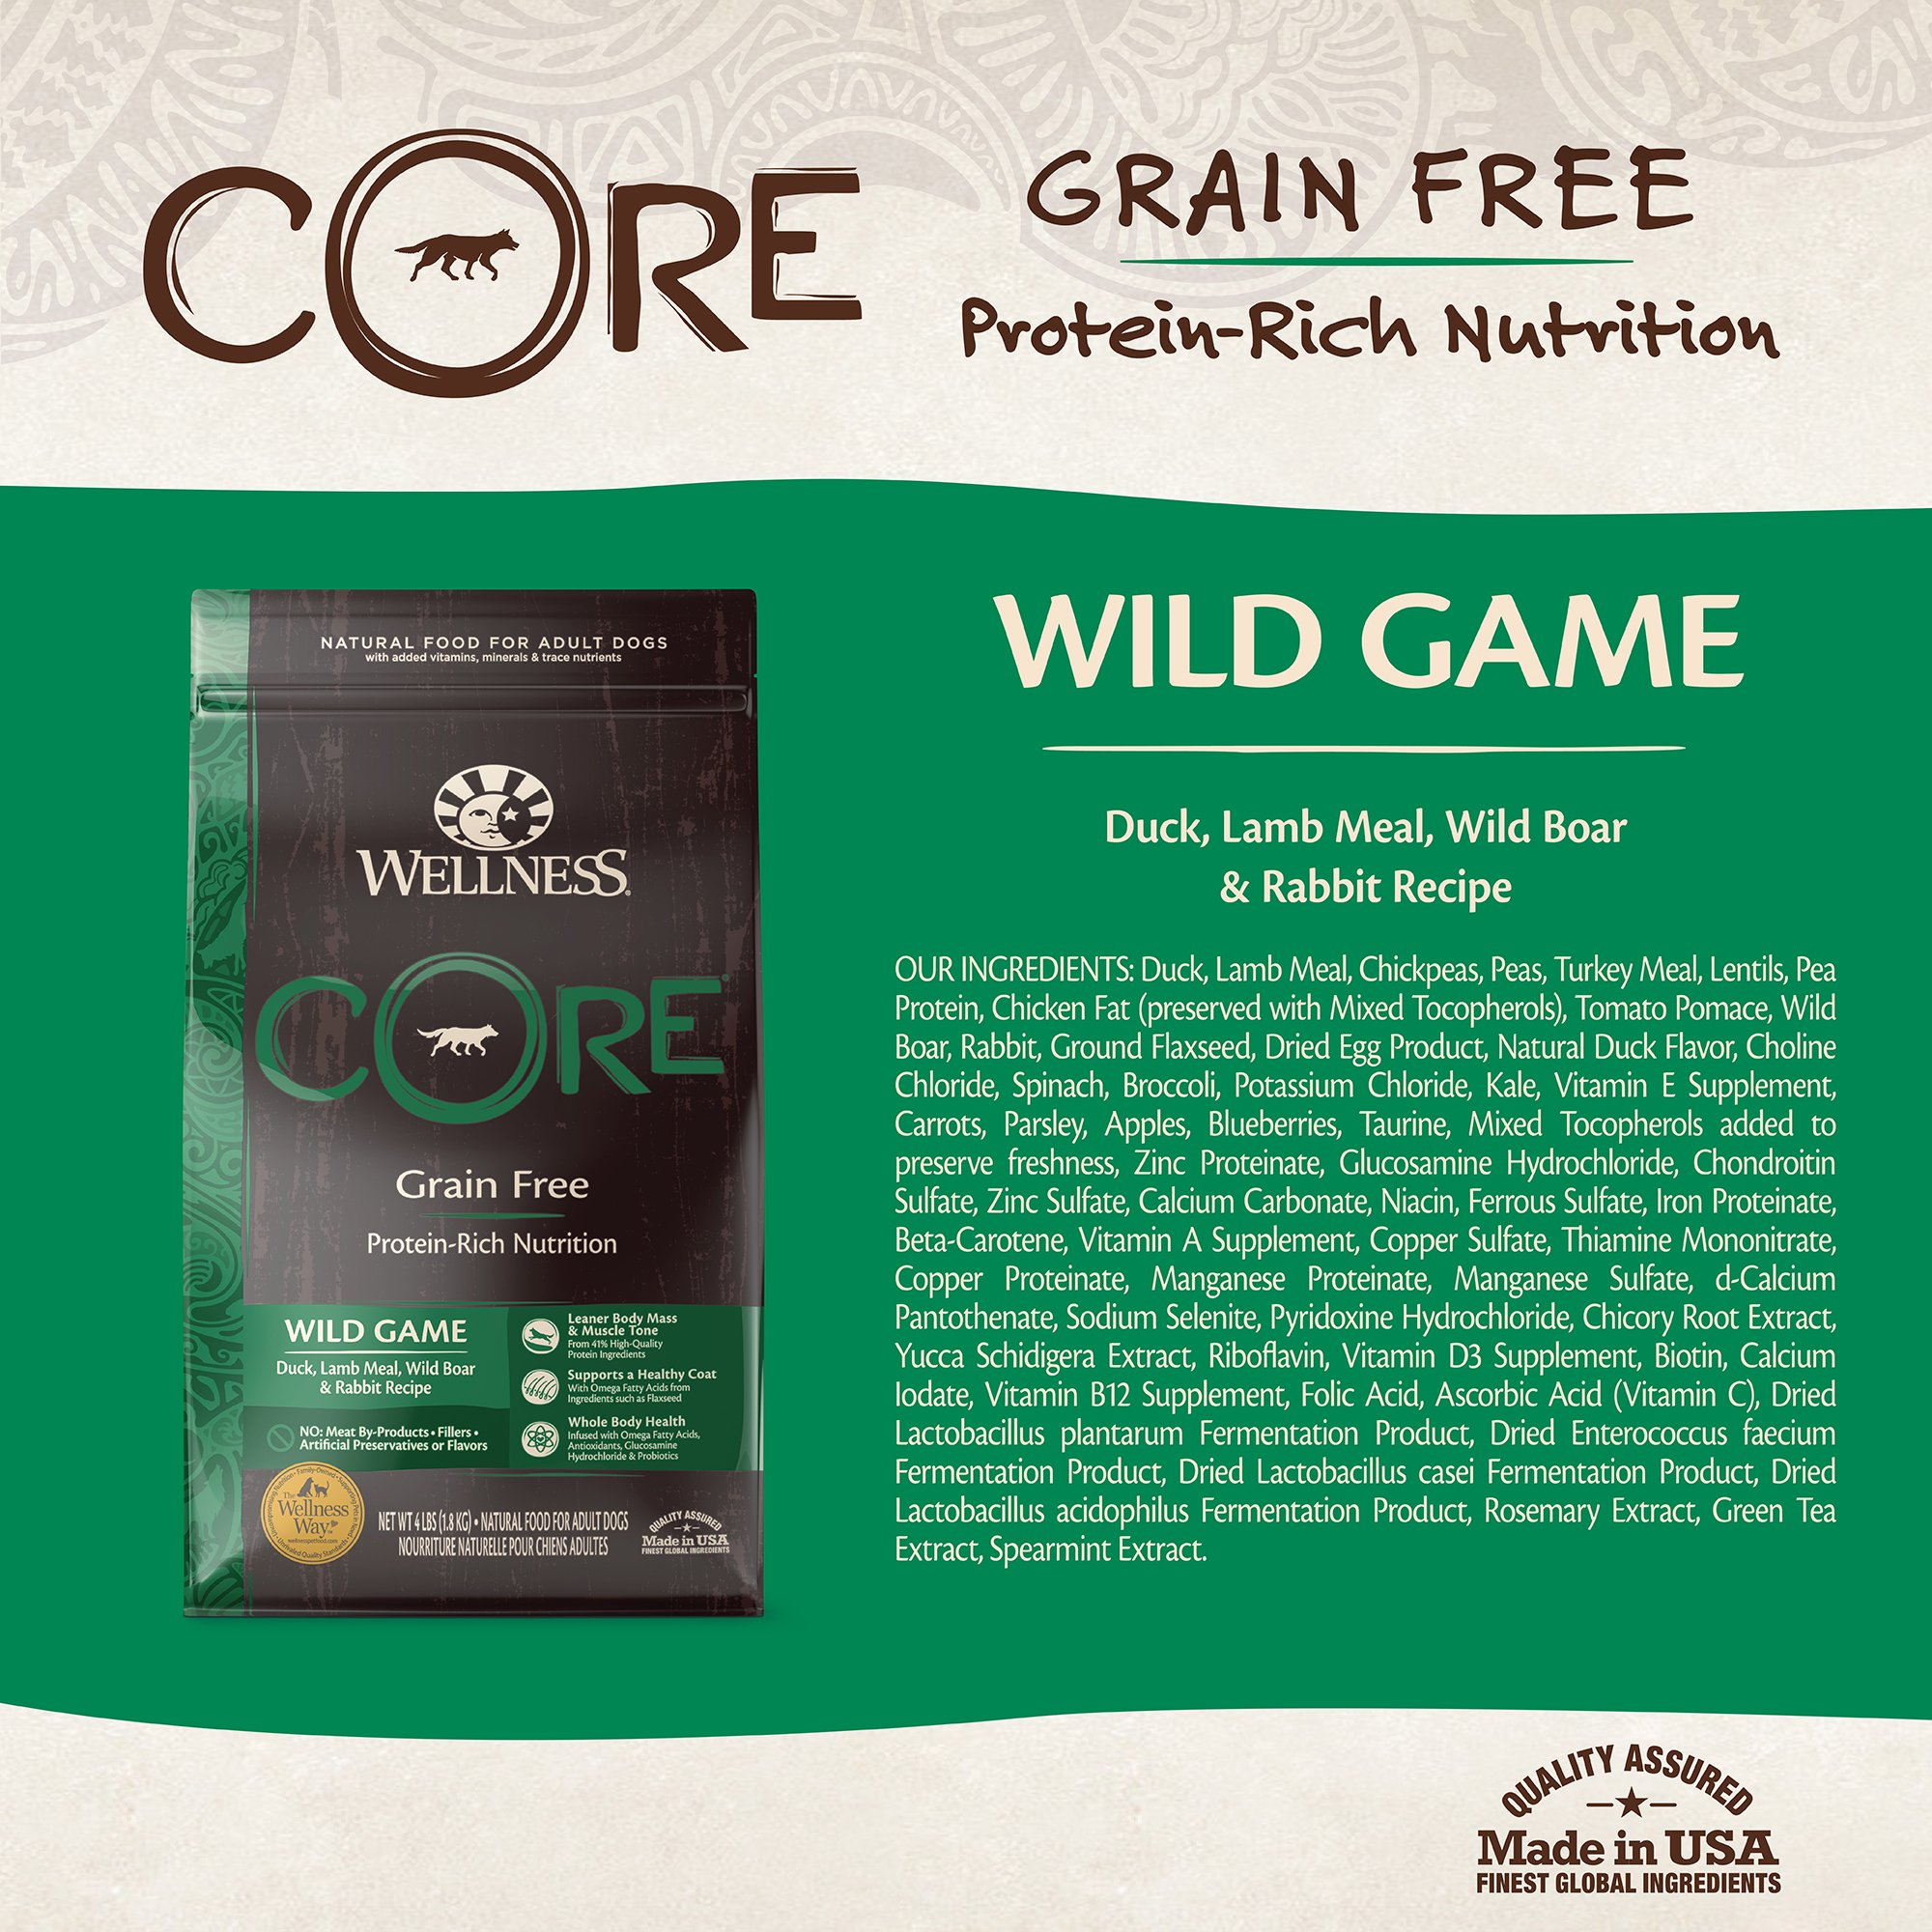 Wellness CORE Natural Grain Free Dry Dog Food, Wild Game Duck, Turkey, Boar & Rabbit, 26-Pound Bag by WELLNESS CORE (Image #3)